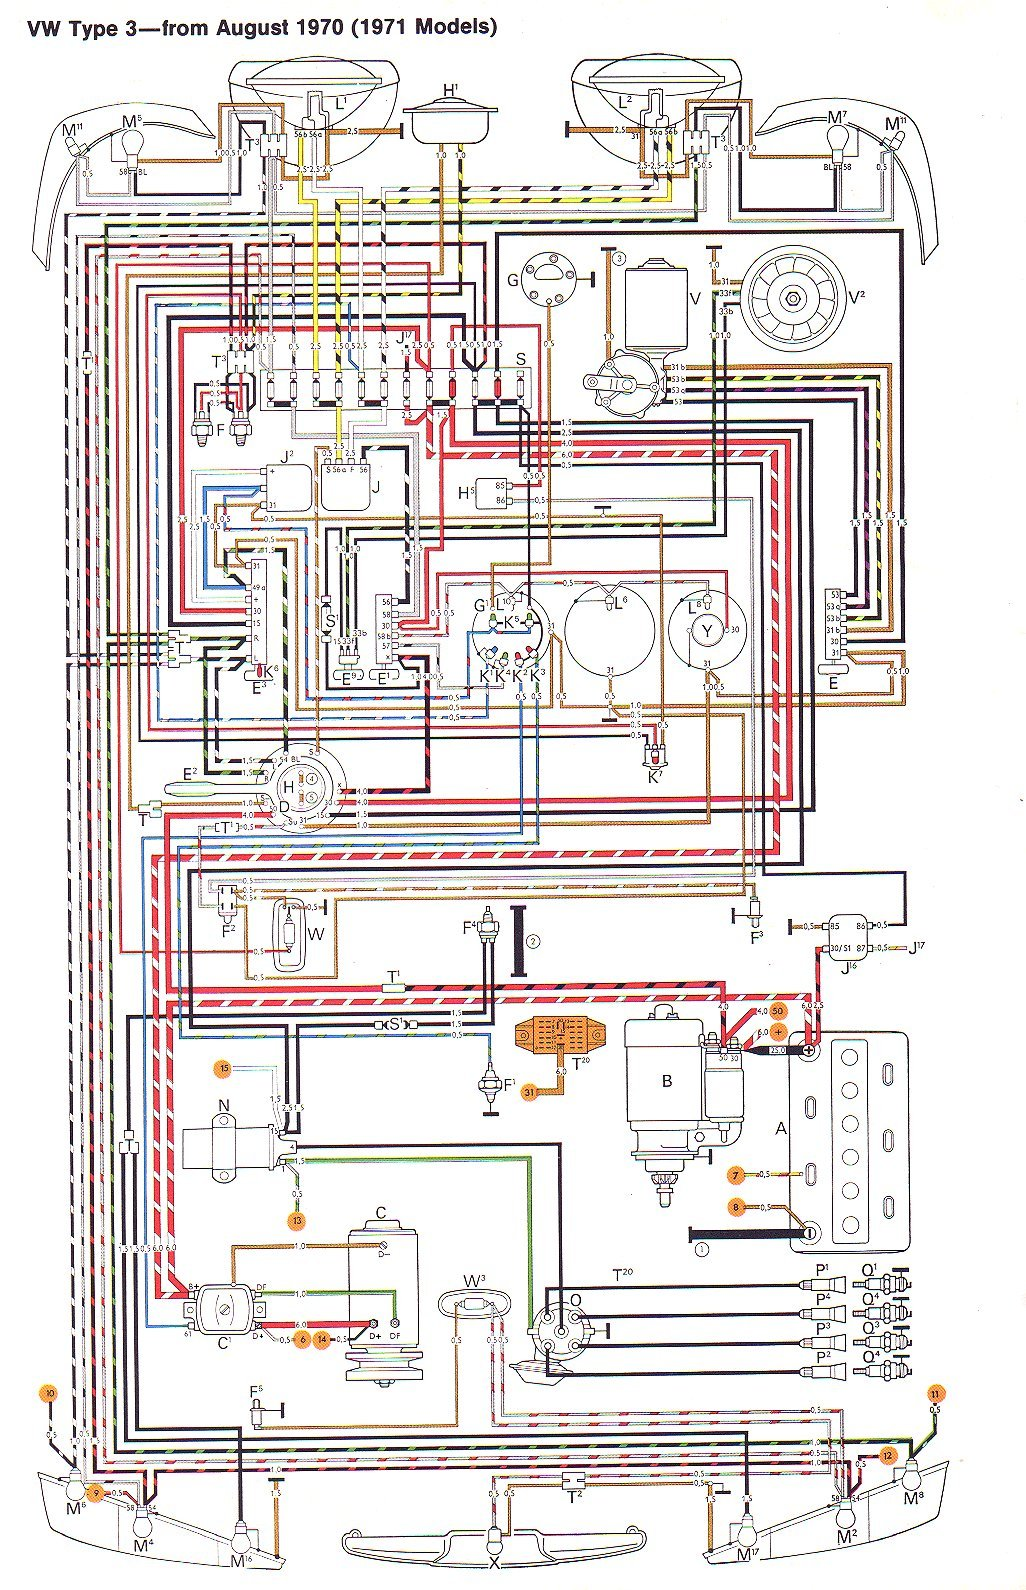 Vw Type 3 Wiring Diagrams